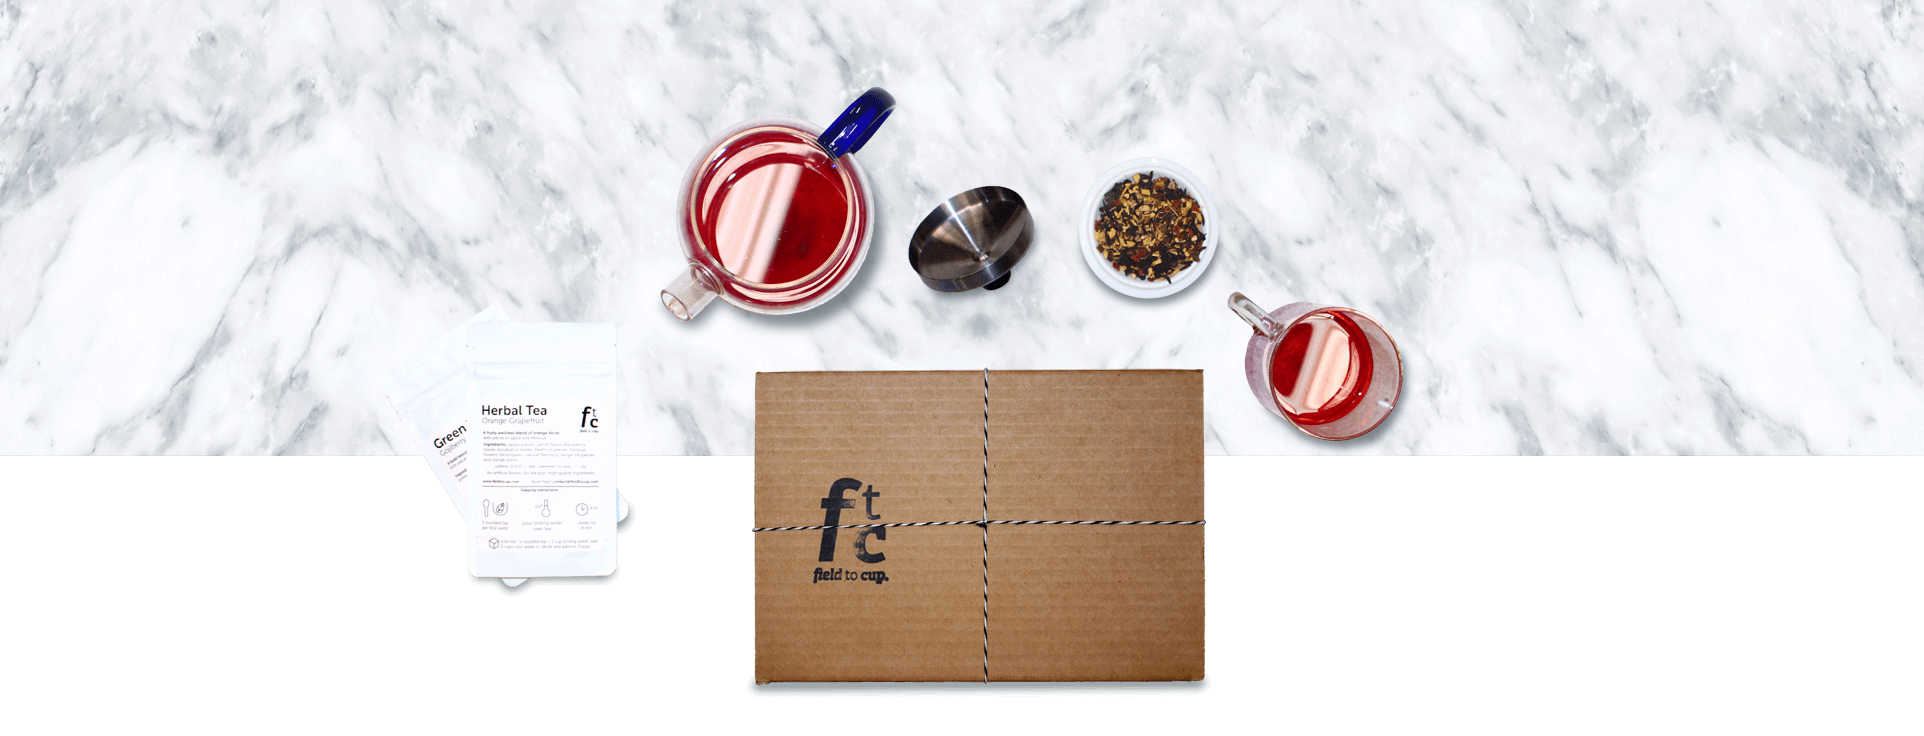 Field to Cup Tea Discovery Box Black Friday 2017 Deals – Get it for $5!